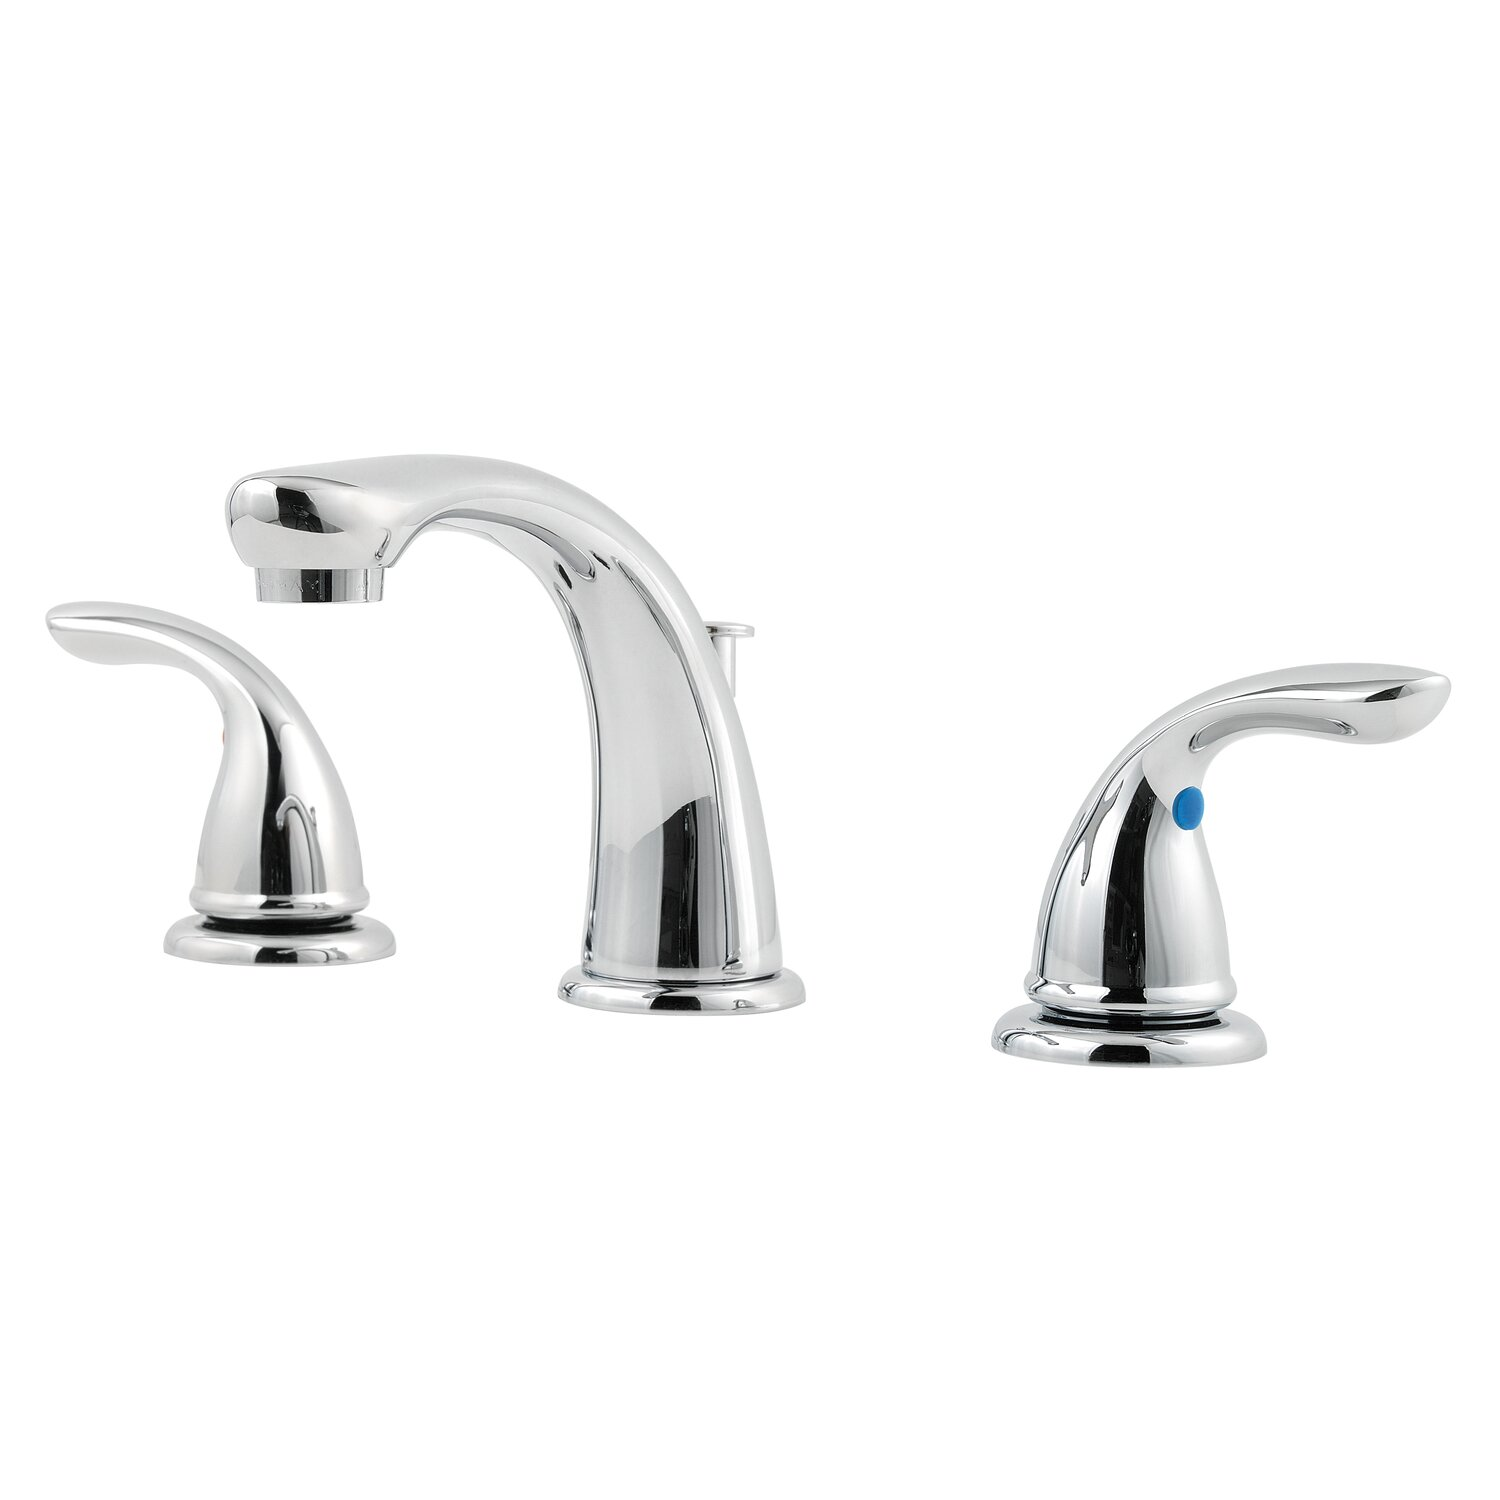 Pewter Bathroom Faucets Rustic Faucets Rustic Beauty Of Molten Bronze Sinks U Faucets